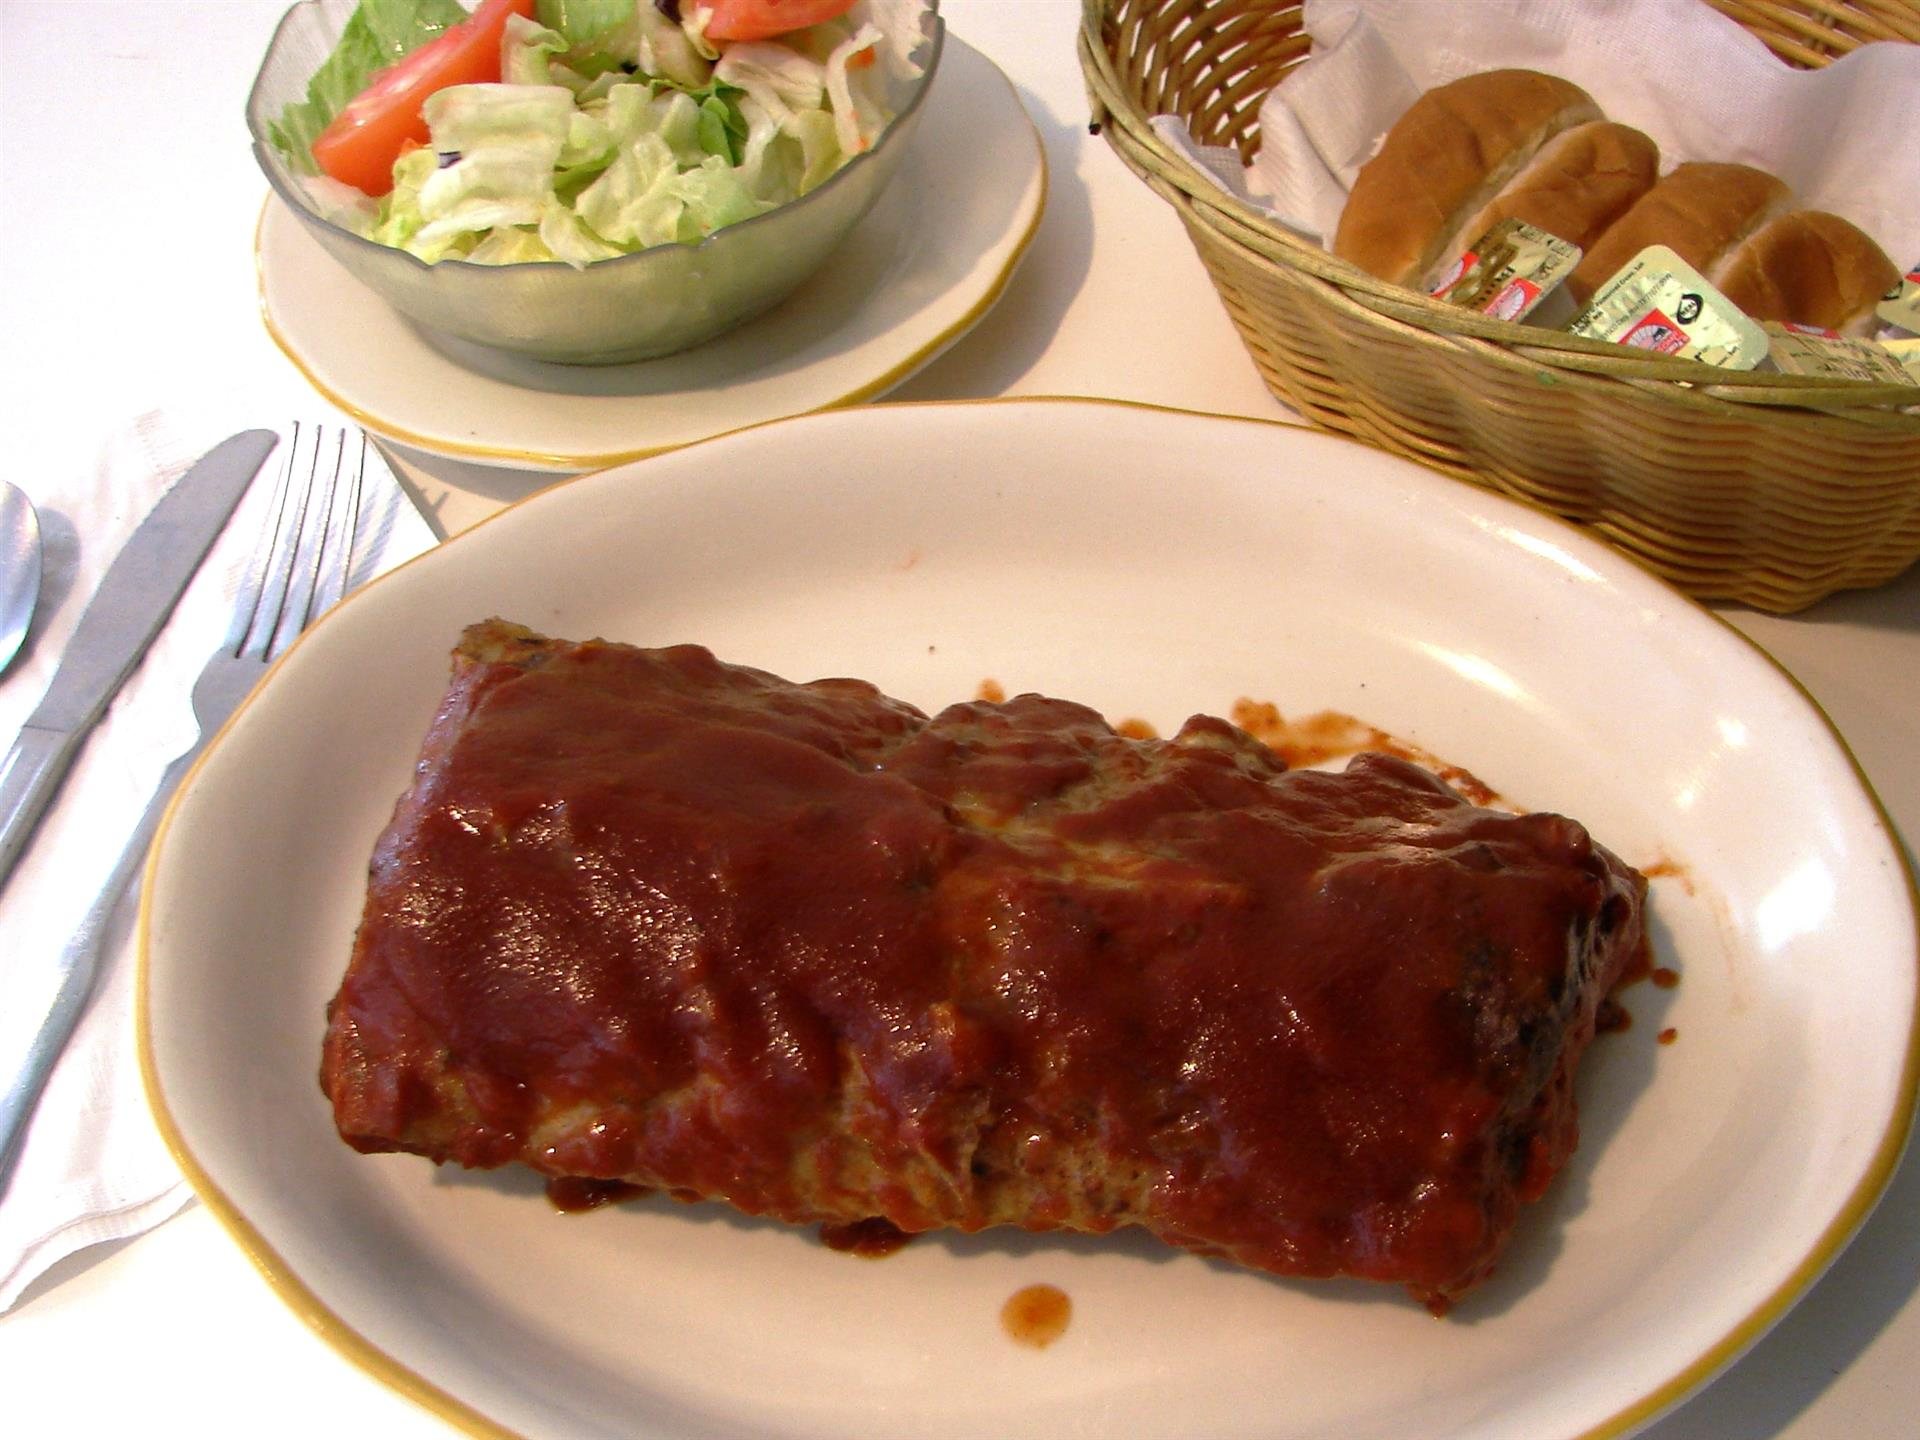 Plate of ribs with barbecue sauce. Side salad, rolls in basket.